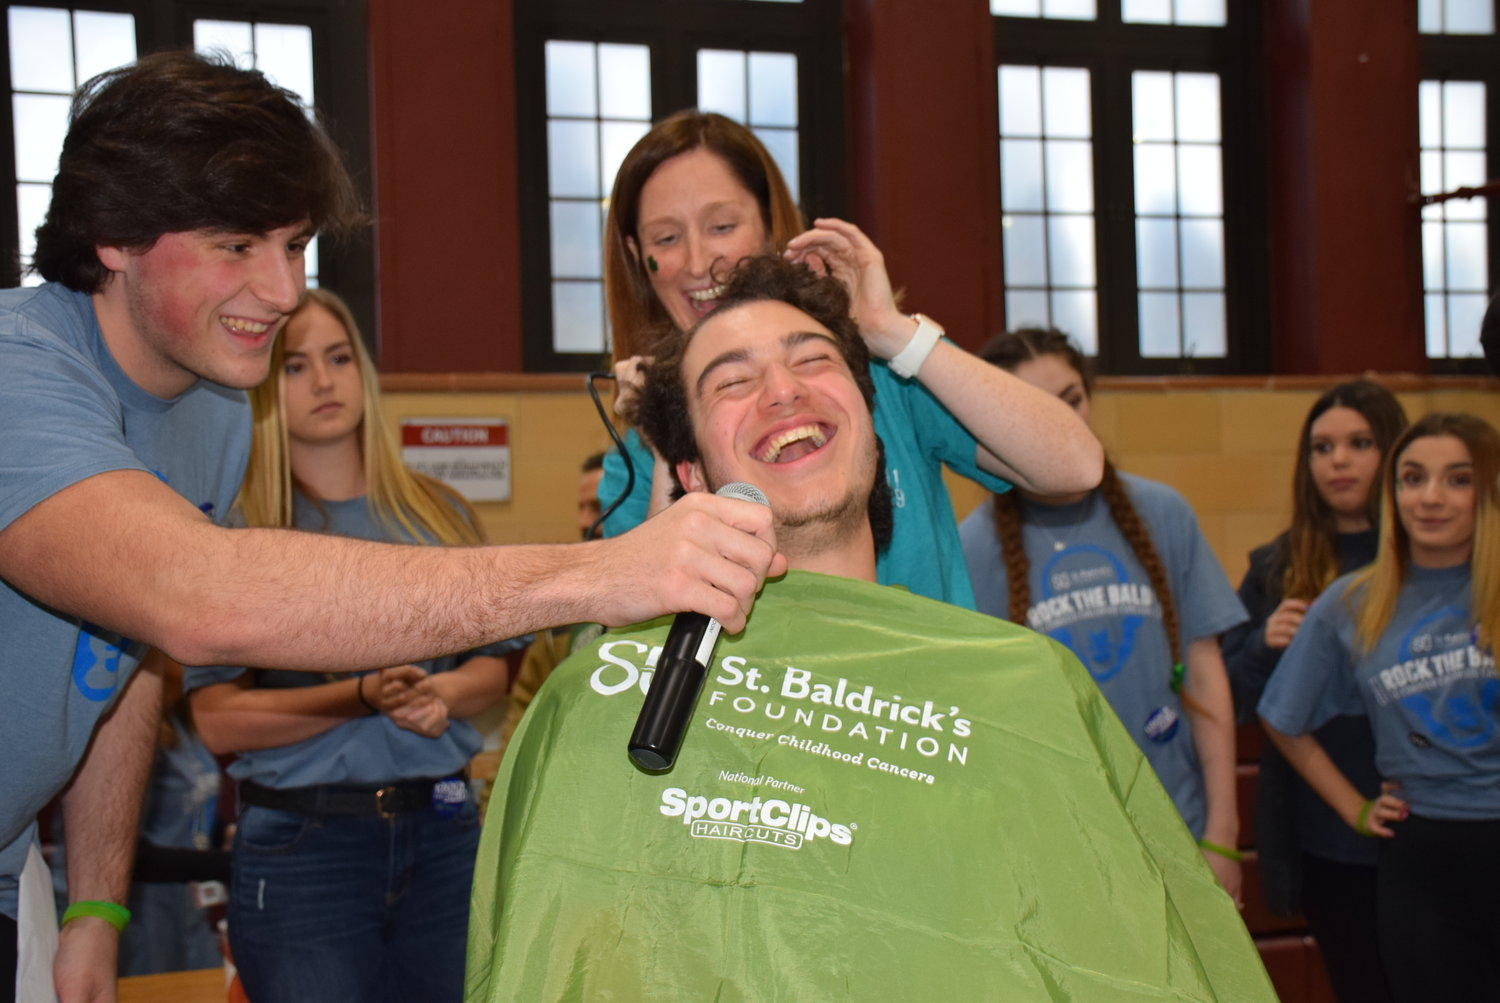 Emcee Connor Molloy interviewed Mepham sophomore Jack Savalli before social studies teacher and St. Baldrick's coordinator Kerry Dennis shaved his head at last year's event.